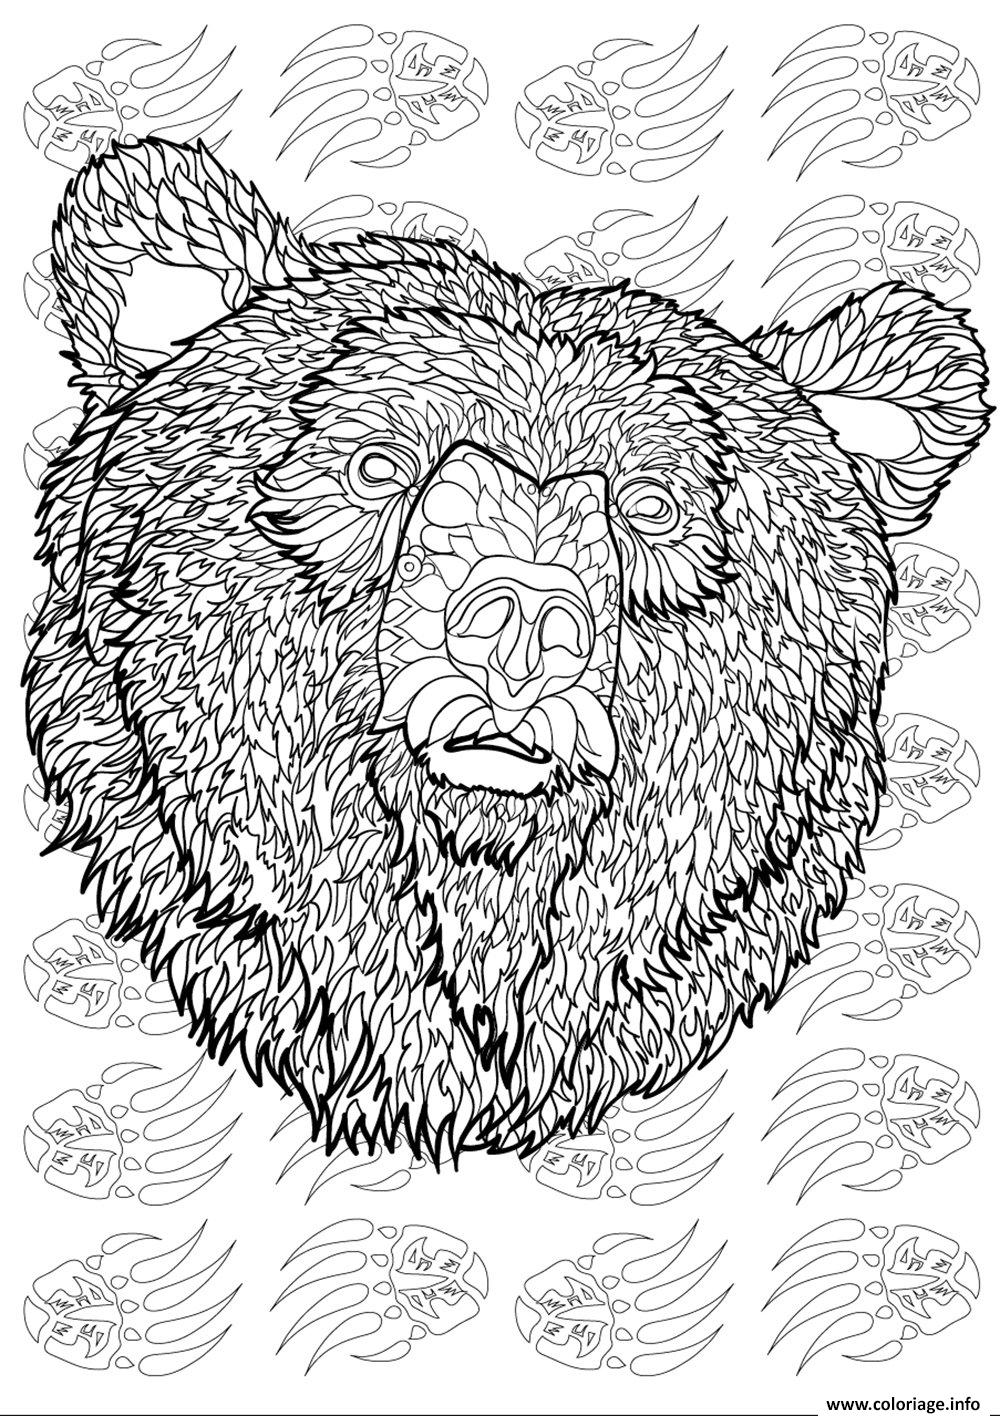 Coloriage ours adulte animaux antistress difficile dessin - Coloriage imprime ...